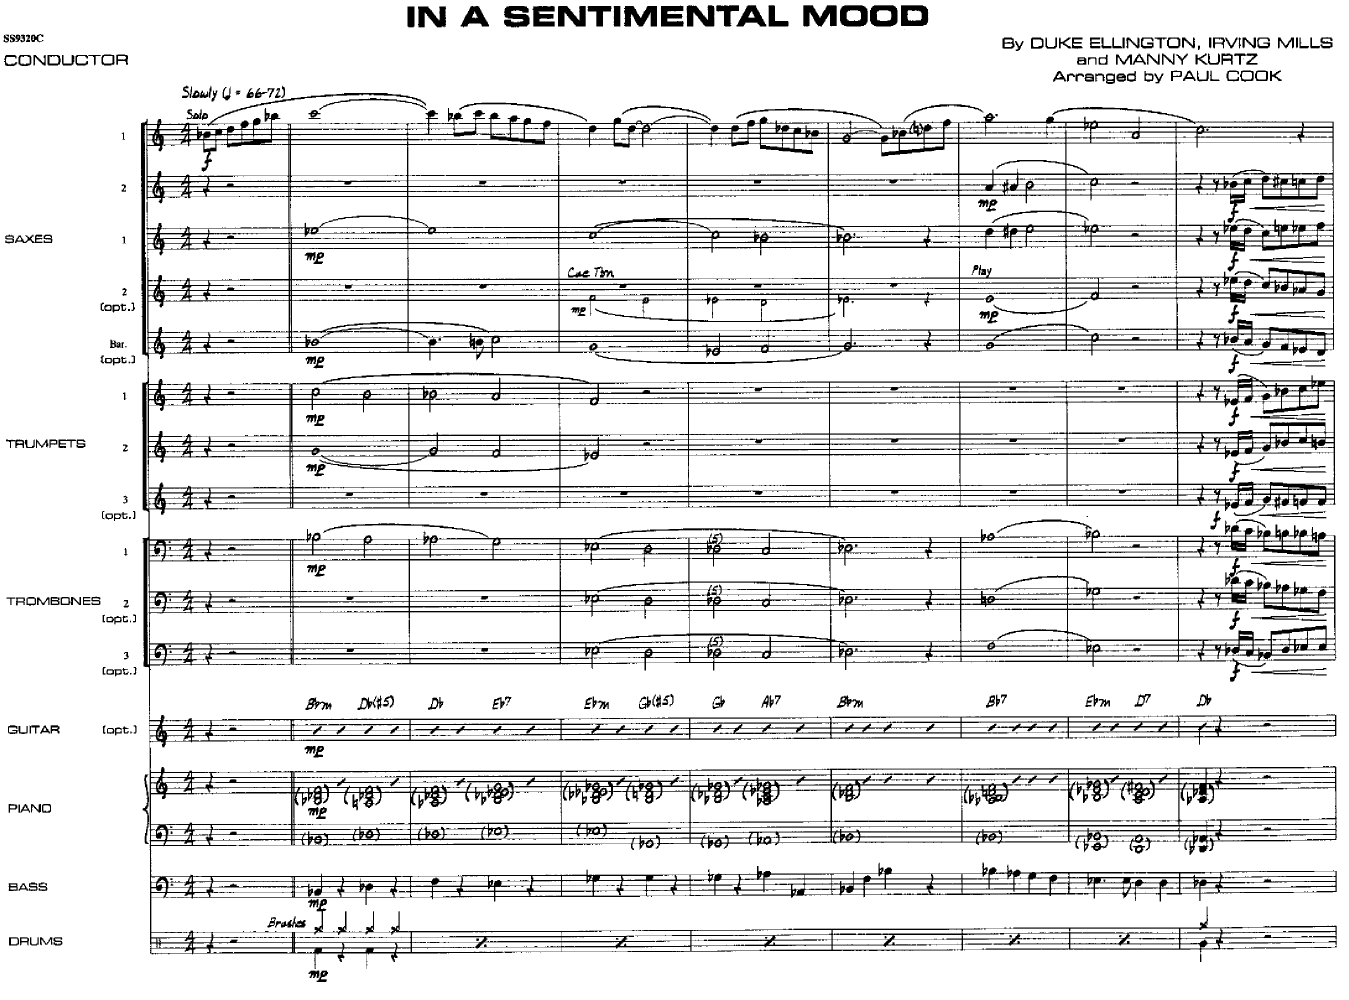 In A Sentimental Mood Piano Sheet Music Ibovnathandedecker